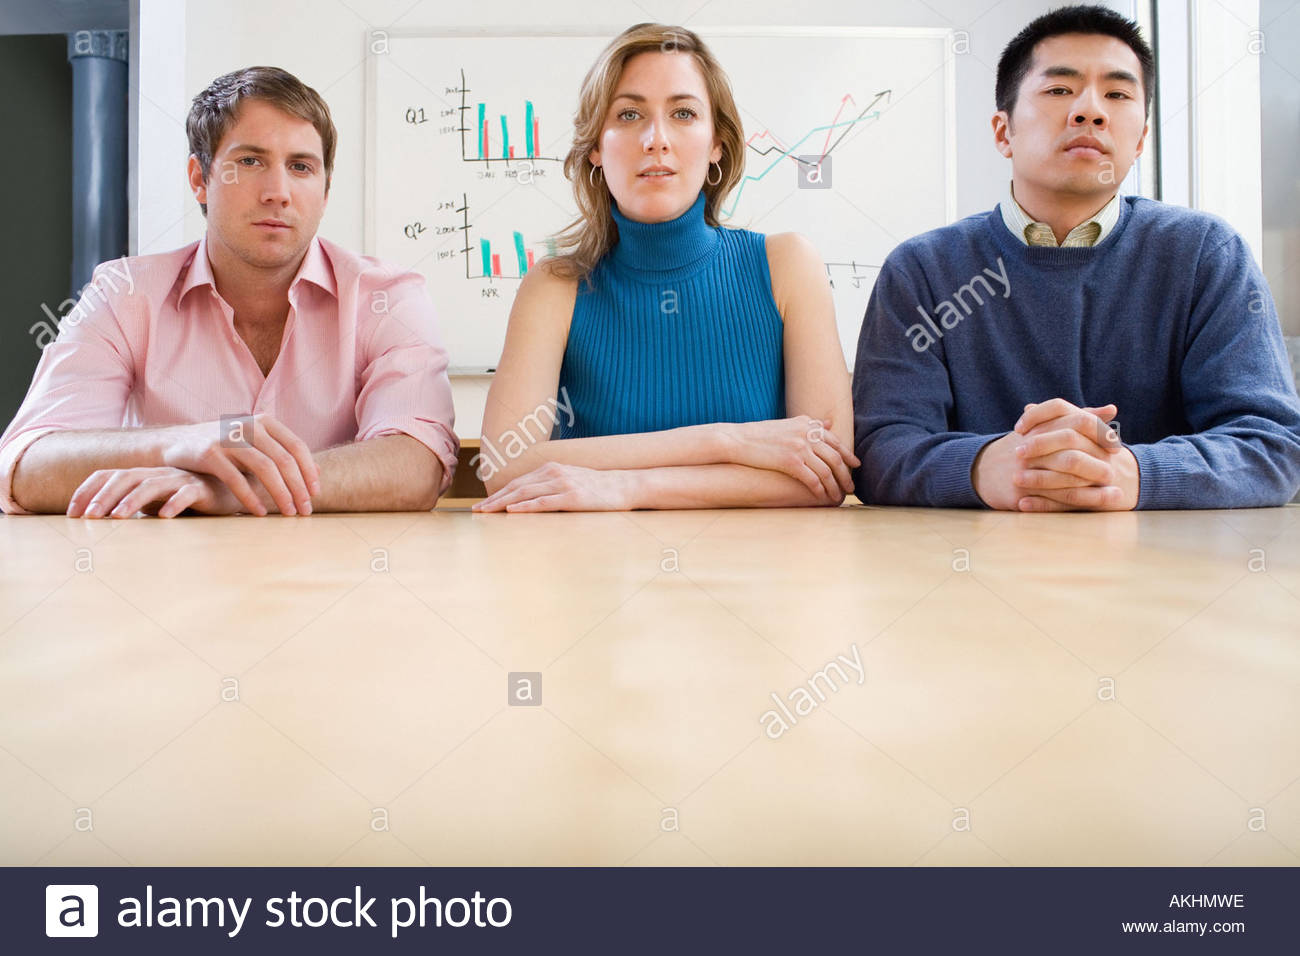 Serious colleagues - Stock Image